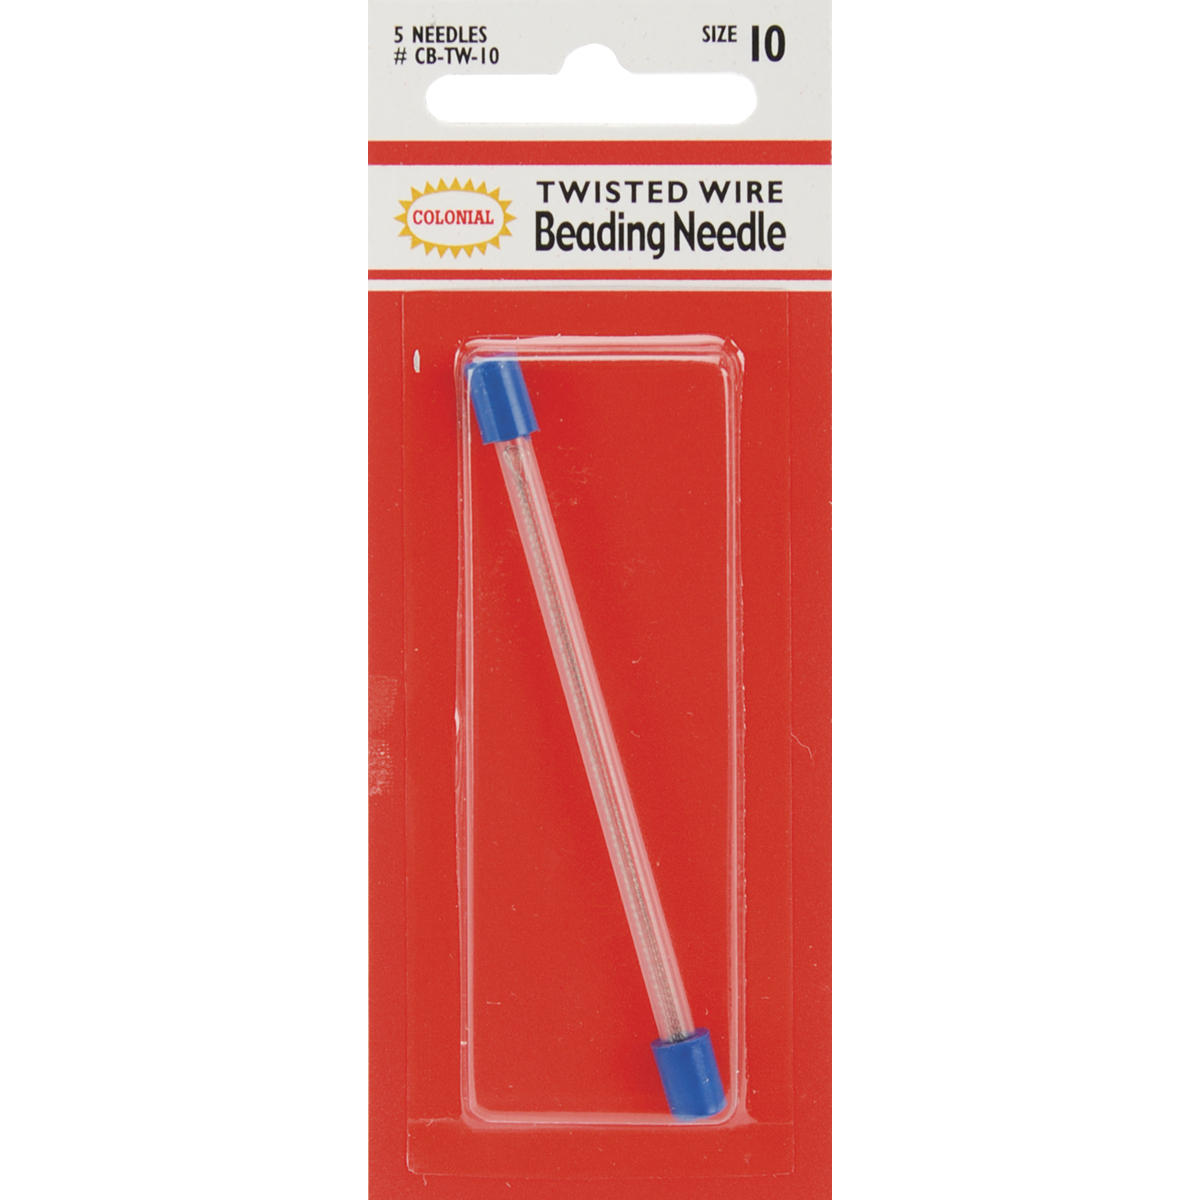 Colonial Needle Twisted Wire Beading Needles-Size 10 5/Pkg